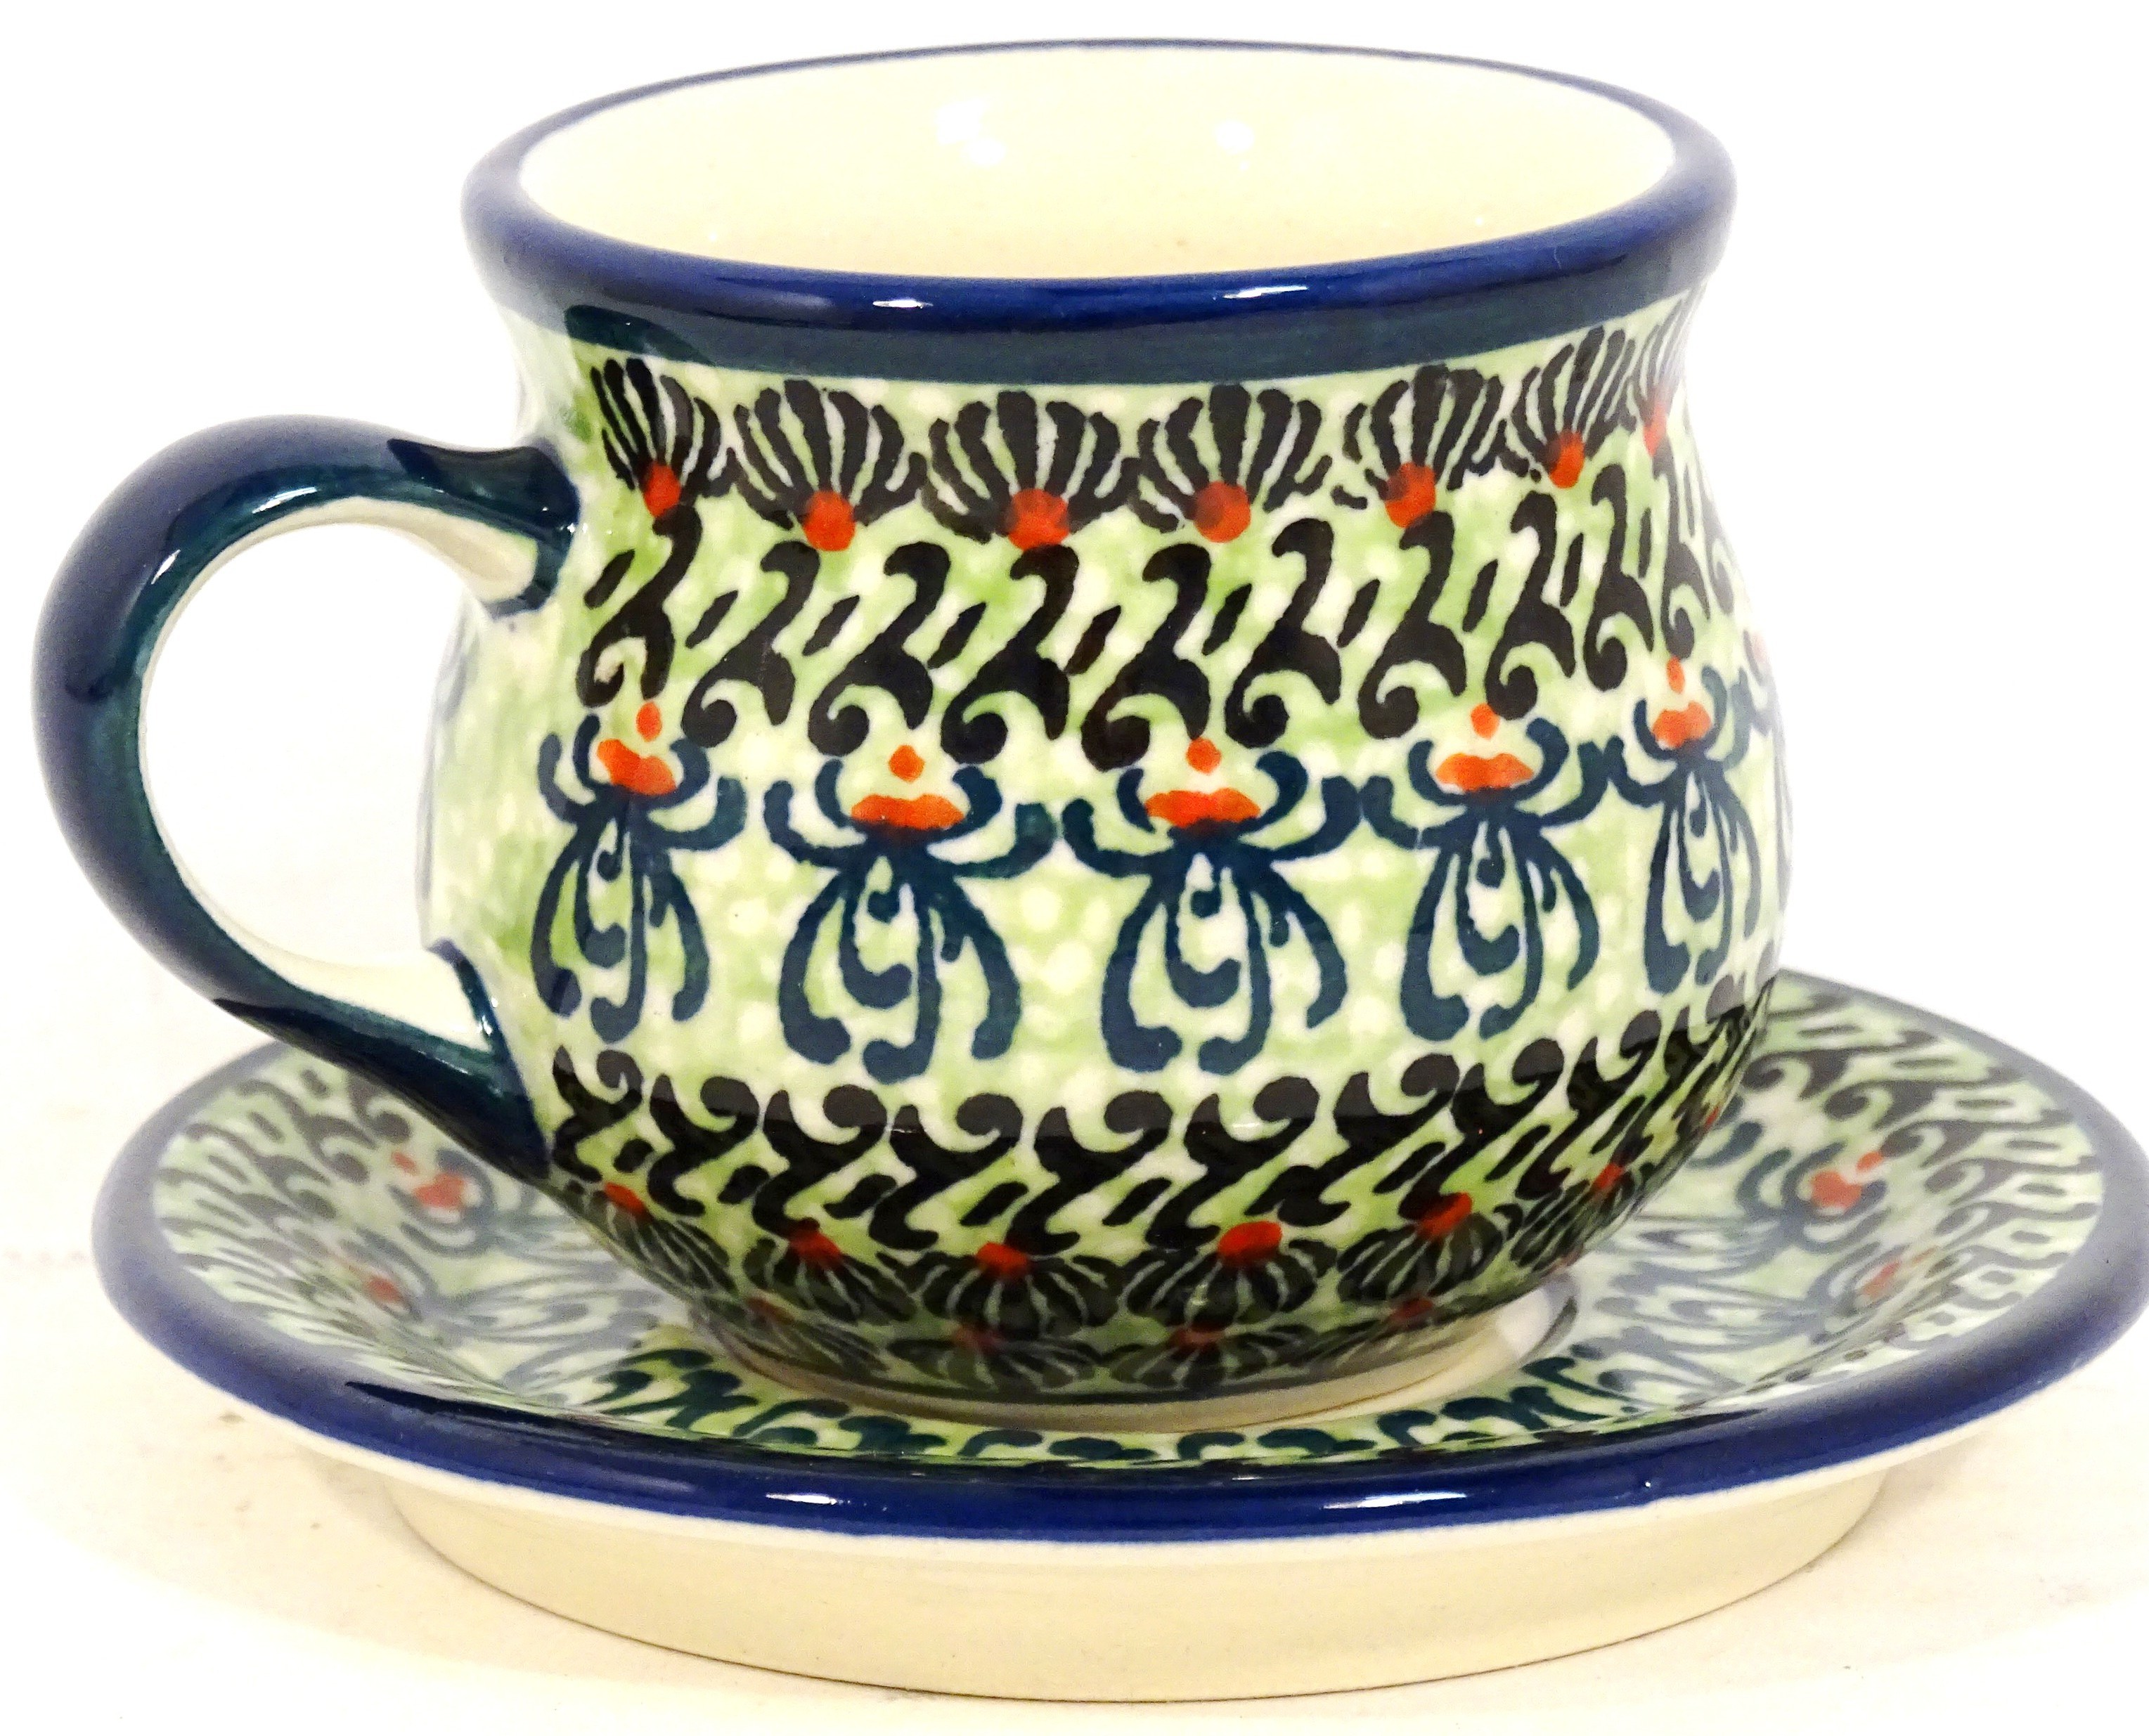 Pottery Avenue Espresso-Demitasse Stoneware Cup and Saucer - 1121-1117-DU181 Buggsy